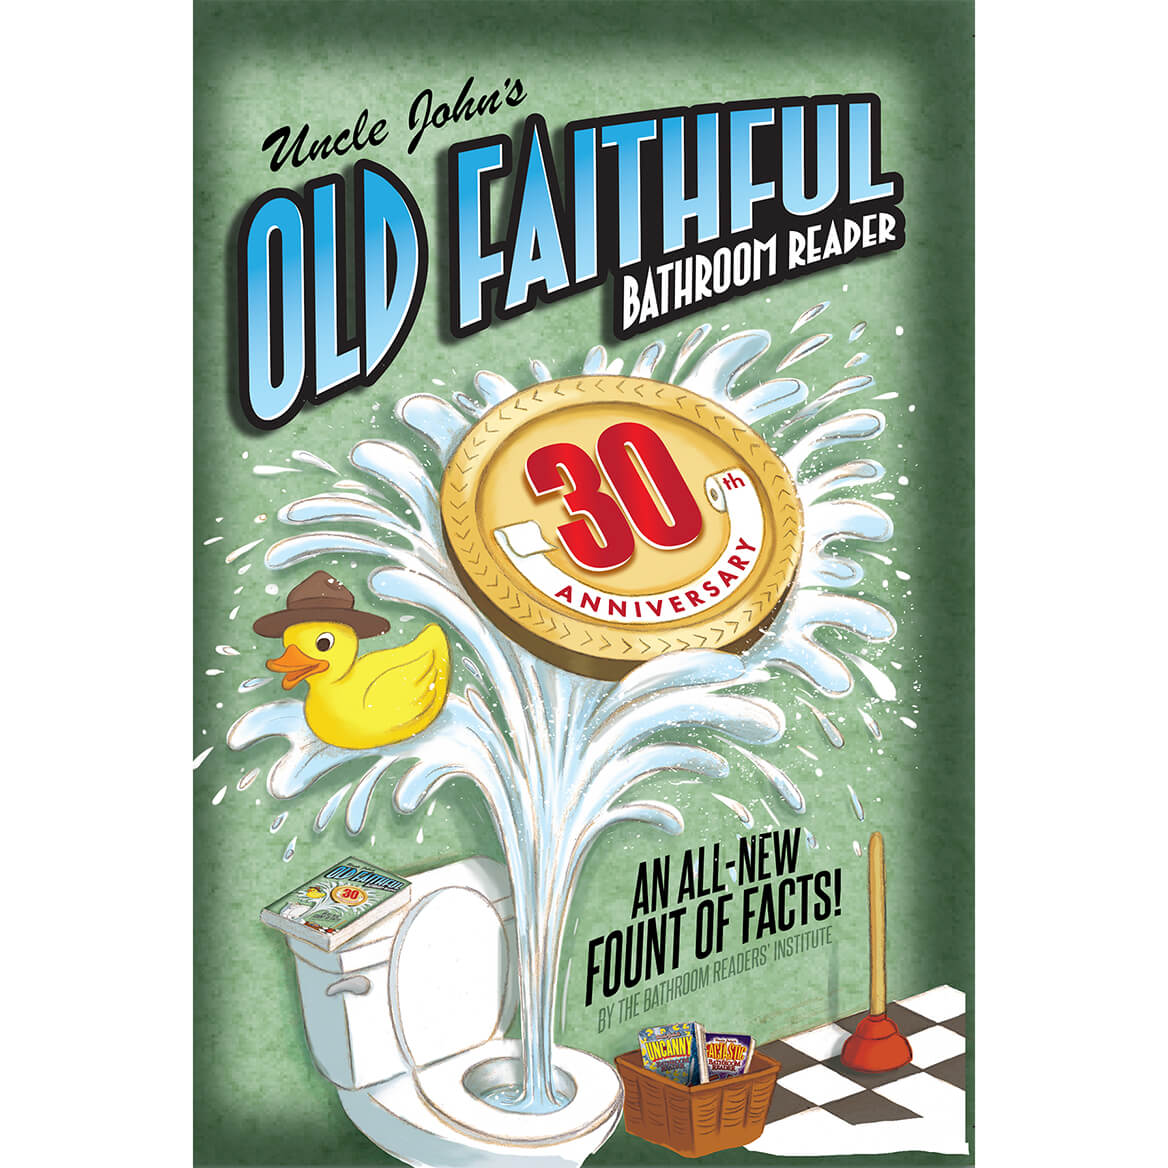 Uncle John's Old Faithful Bathroom Reader